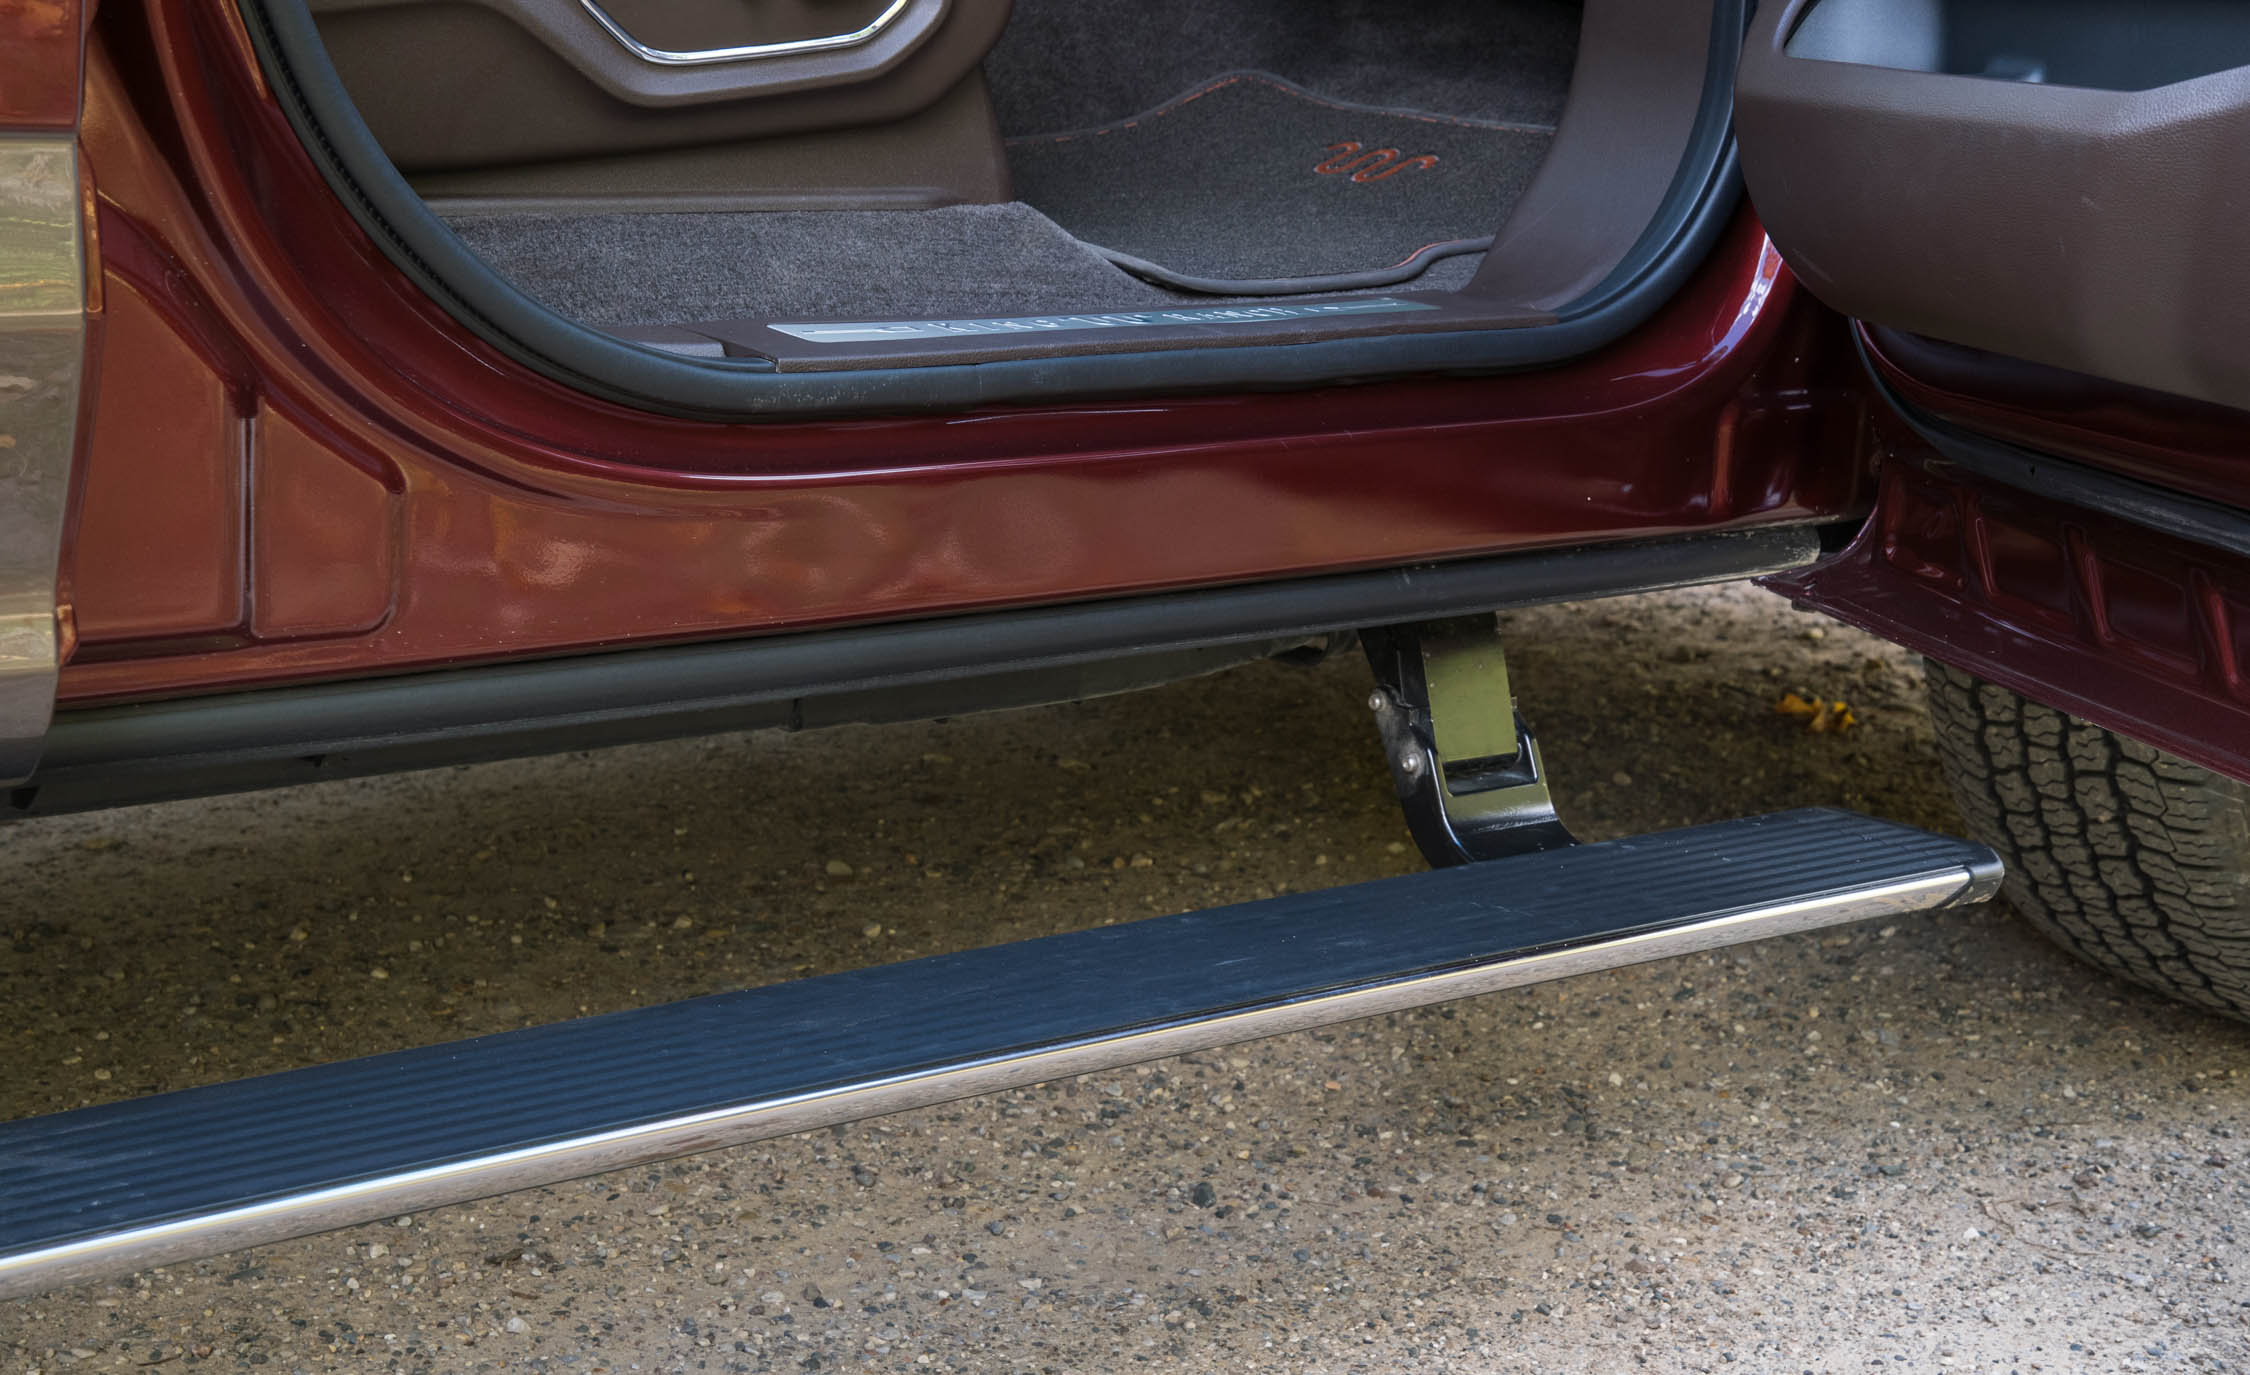 2017 Ford F 150 King Ranch Exterior View Power Side Step Bar (Photo 35 of 50)